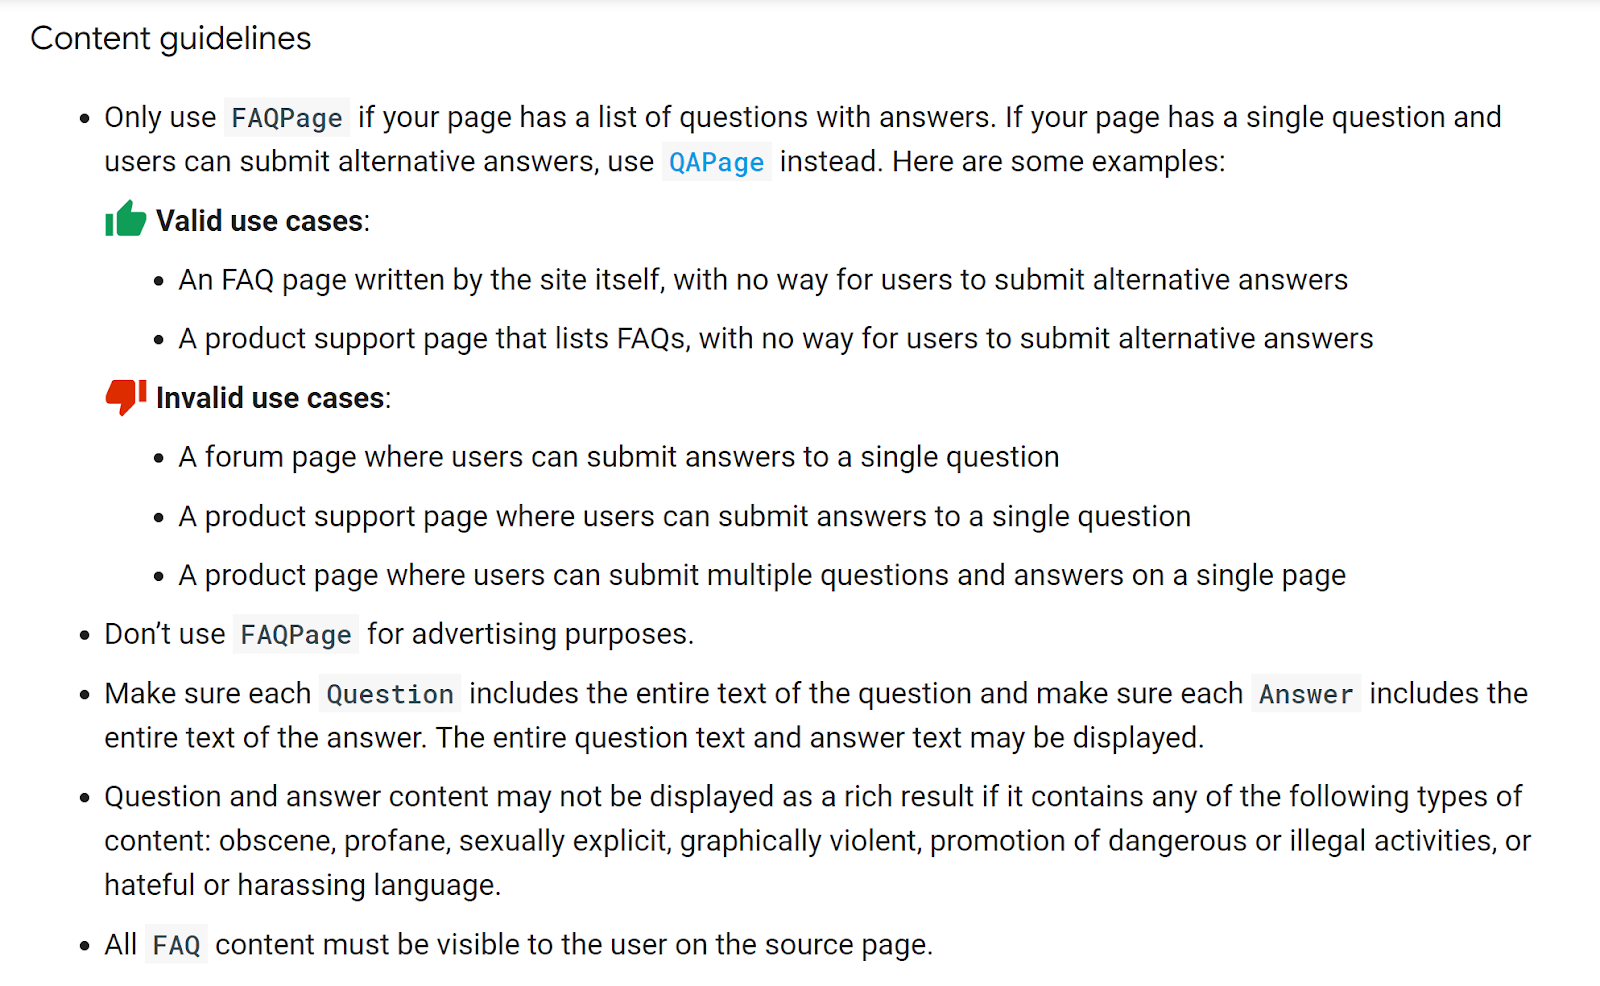 Google Content Guidelines - FAQ